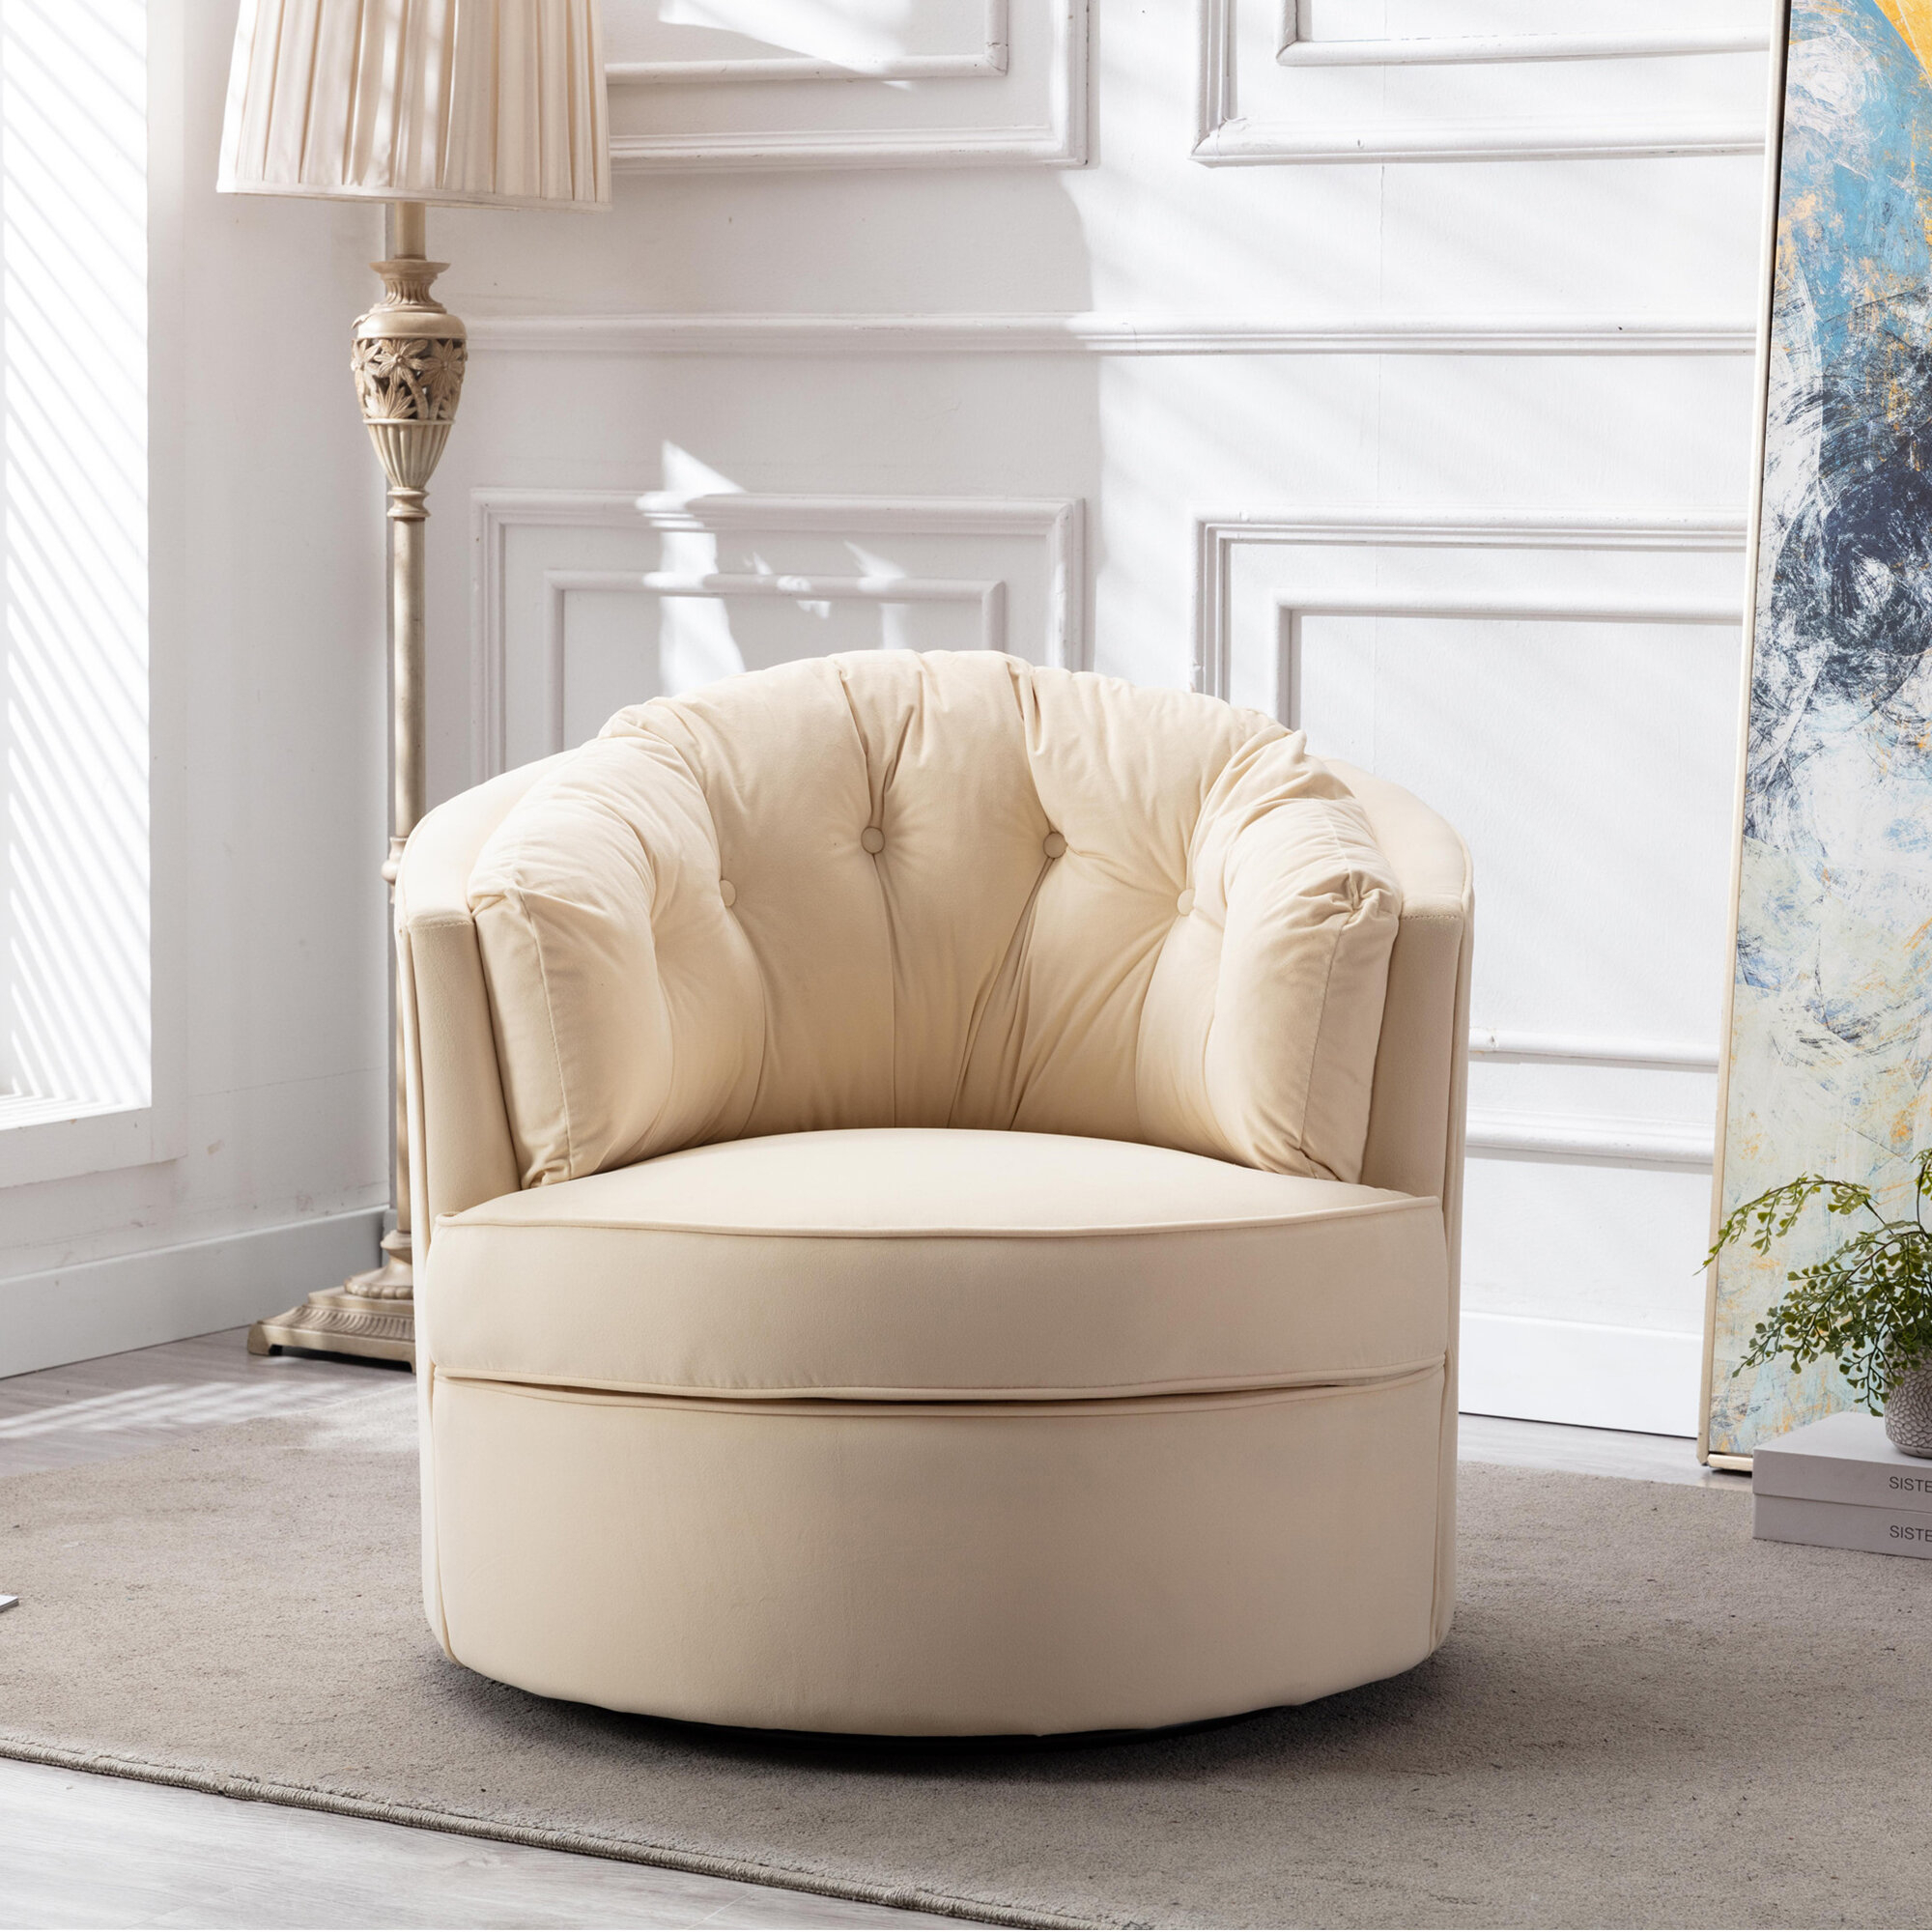 Barrel Yellow Accent Chairs You'Ll Love In 2021 | Wayfair With Alwillie Tufted Back Barrel Chairs (View 5 of 15)